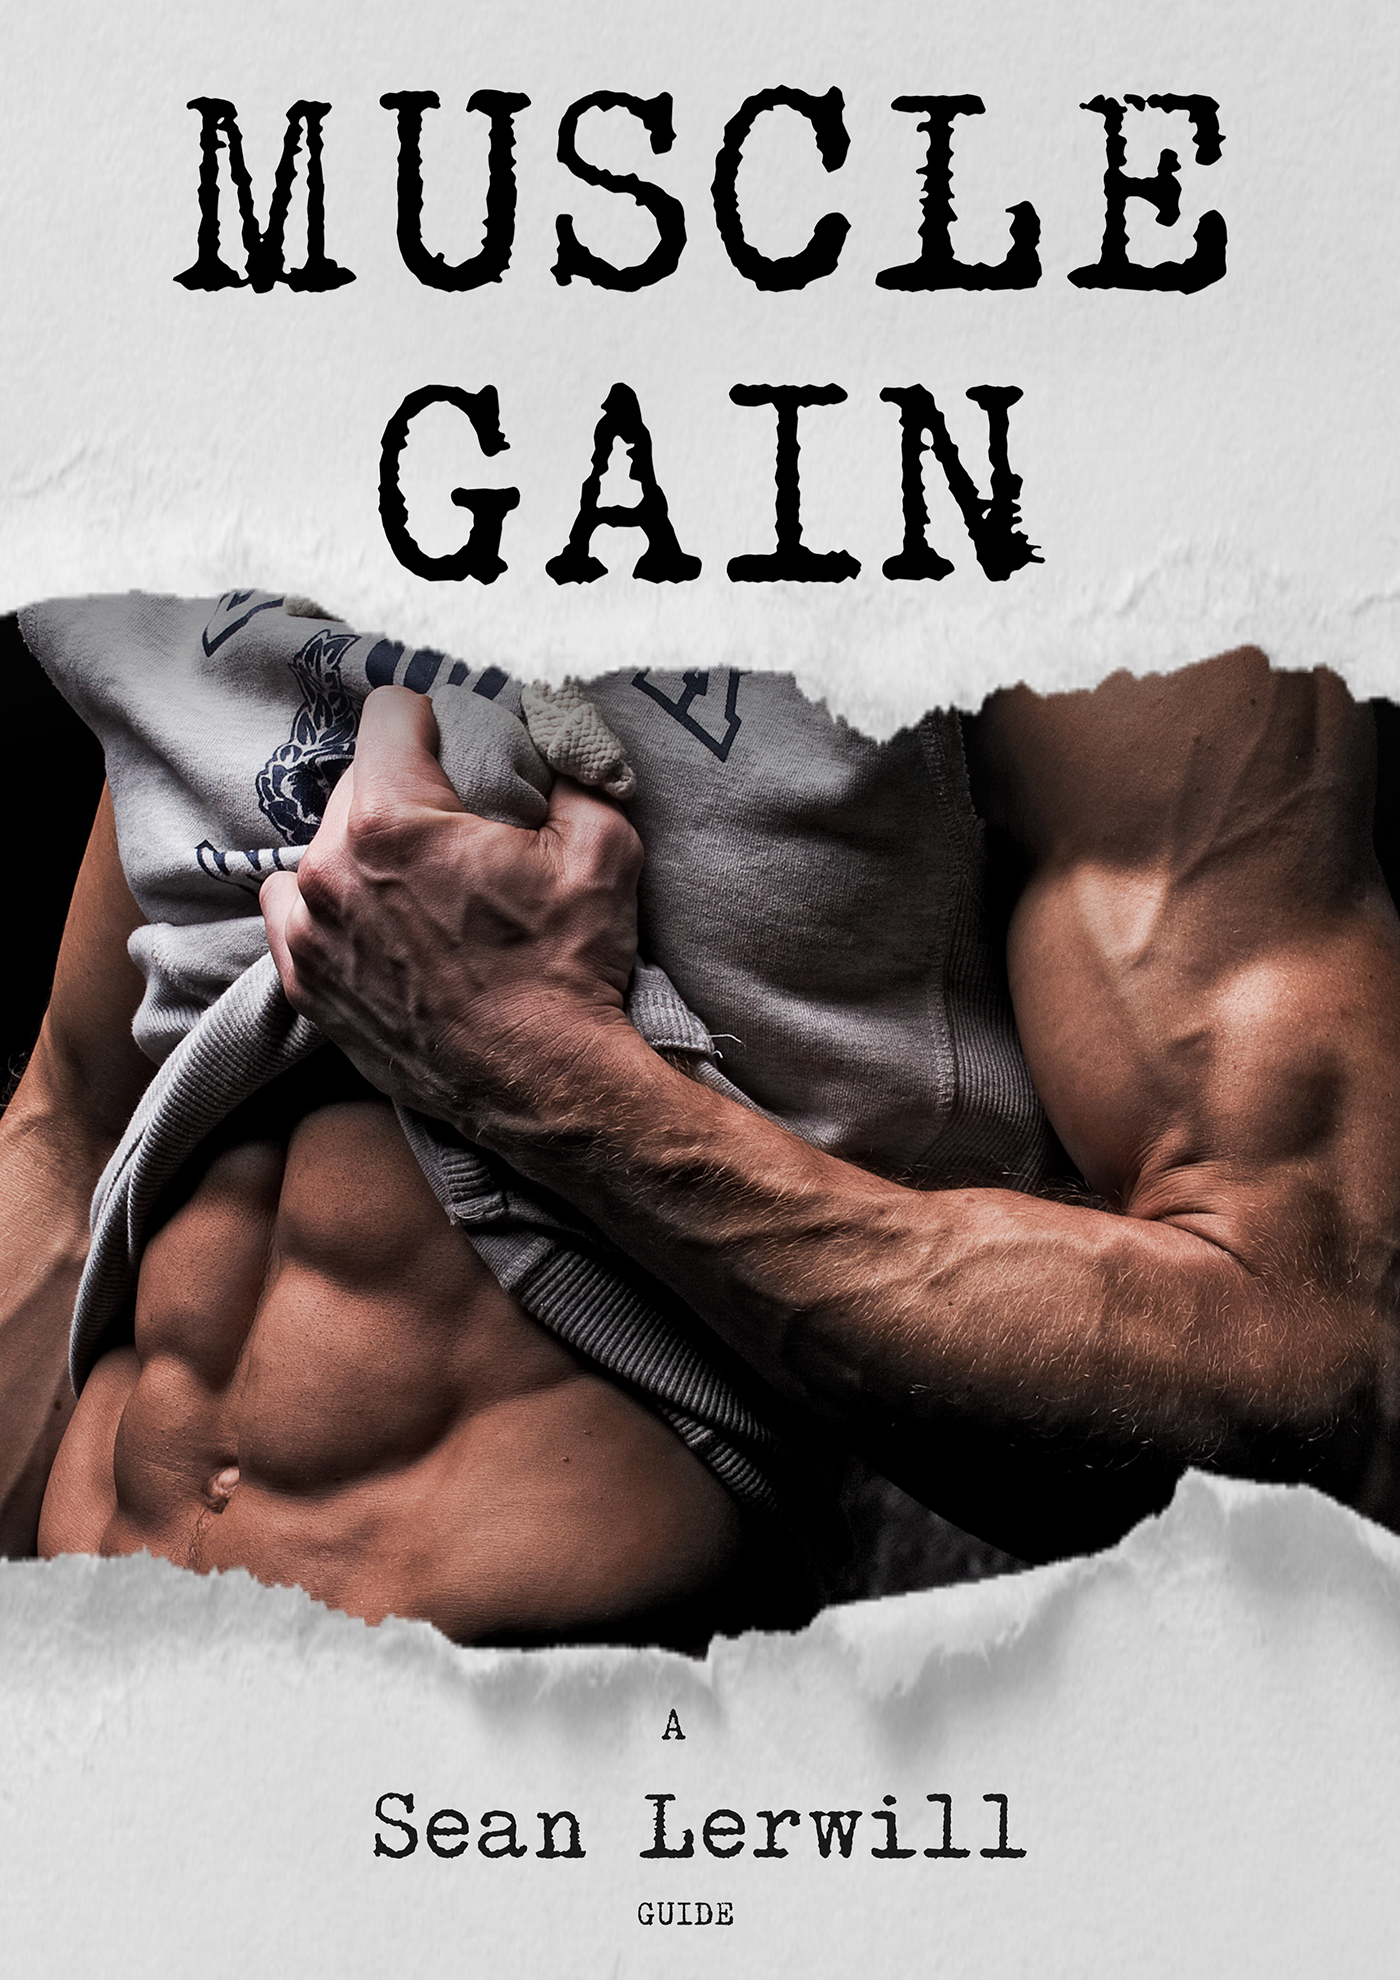 Sean Lerwill's Guide to Muscle Gain cover